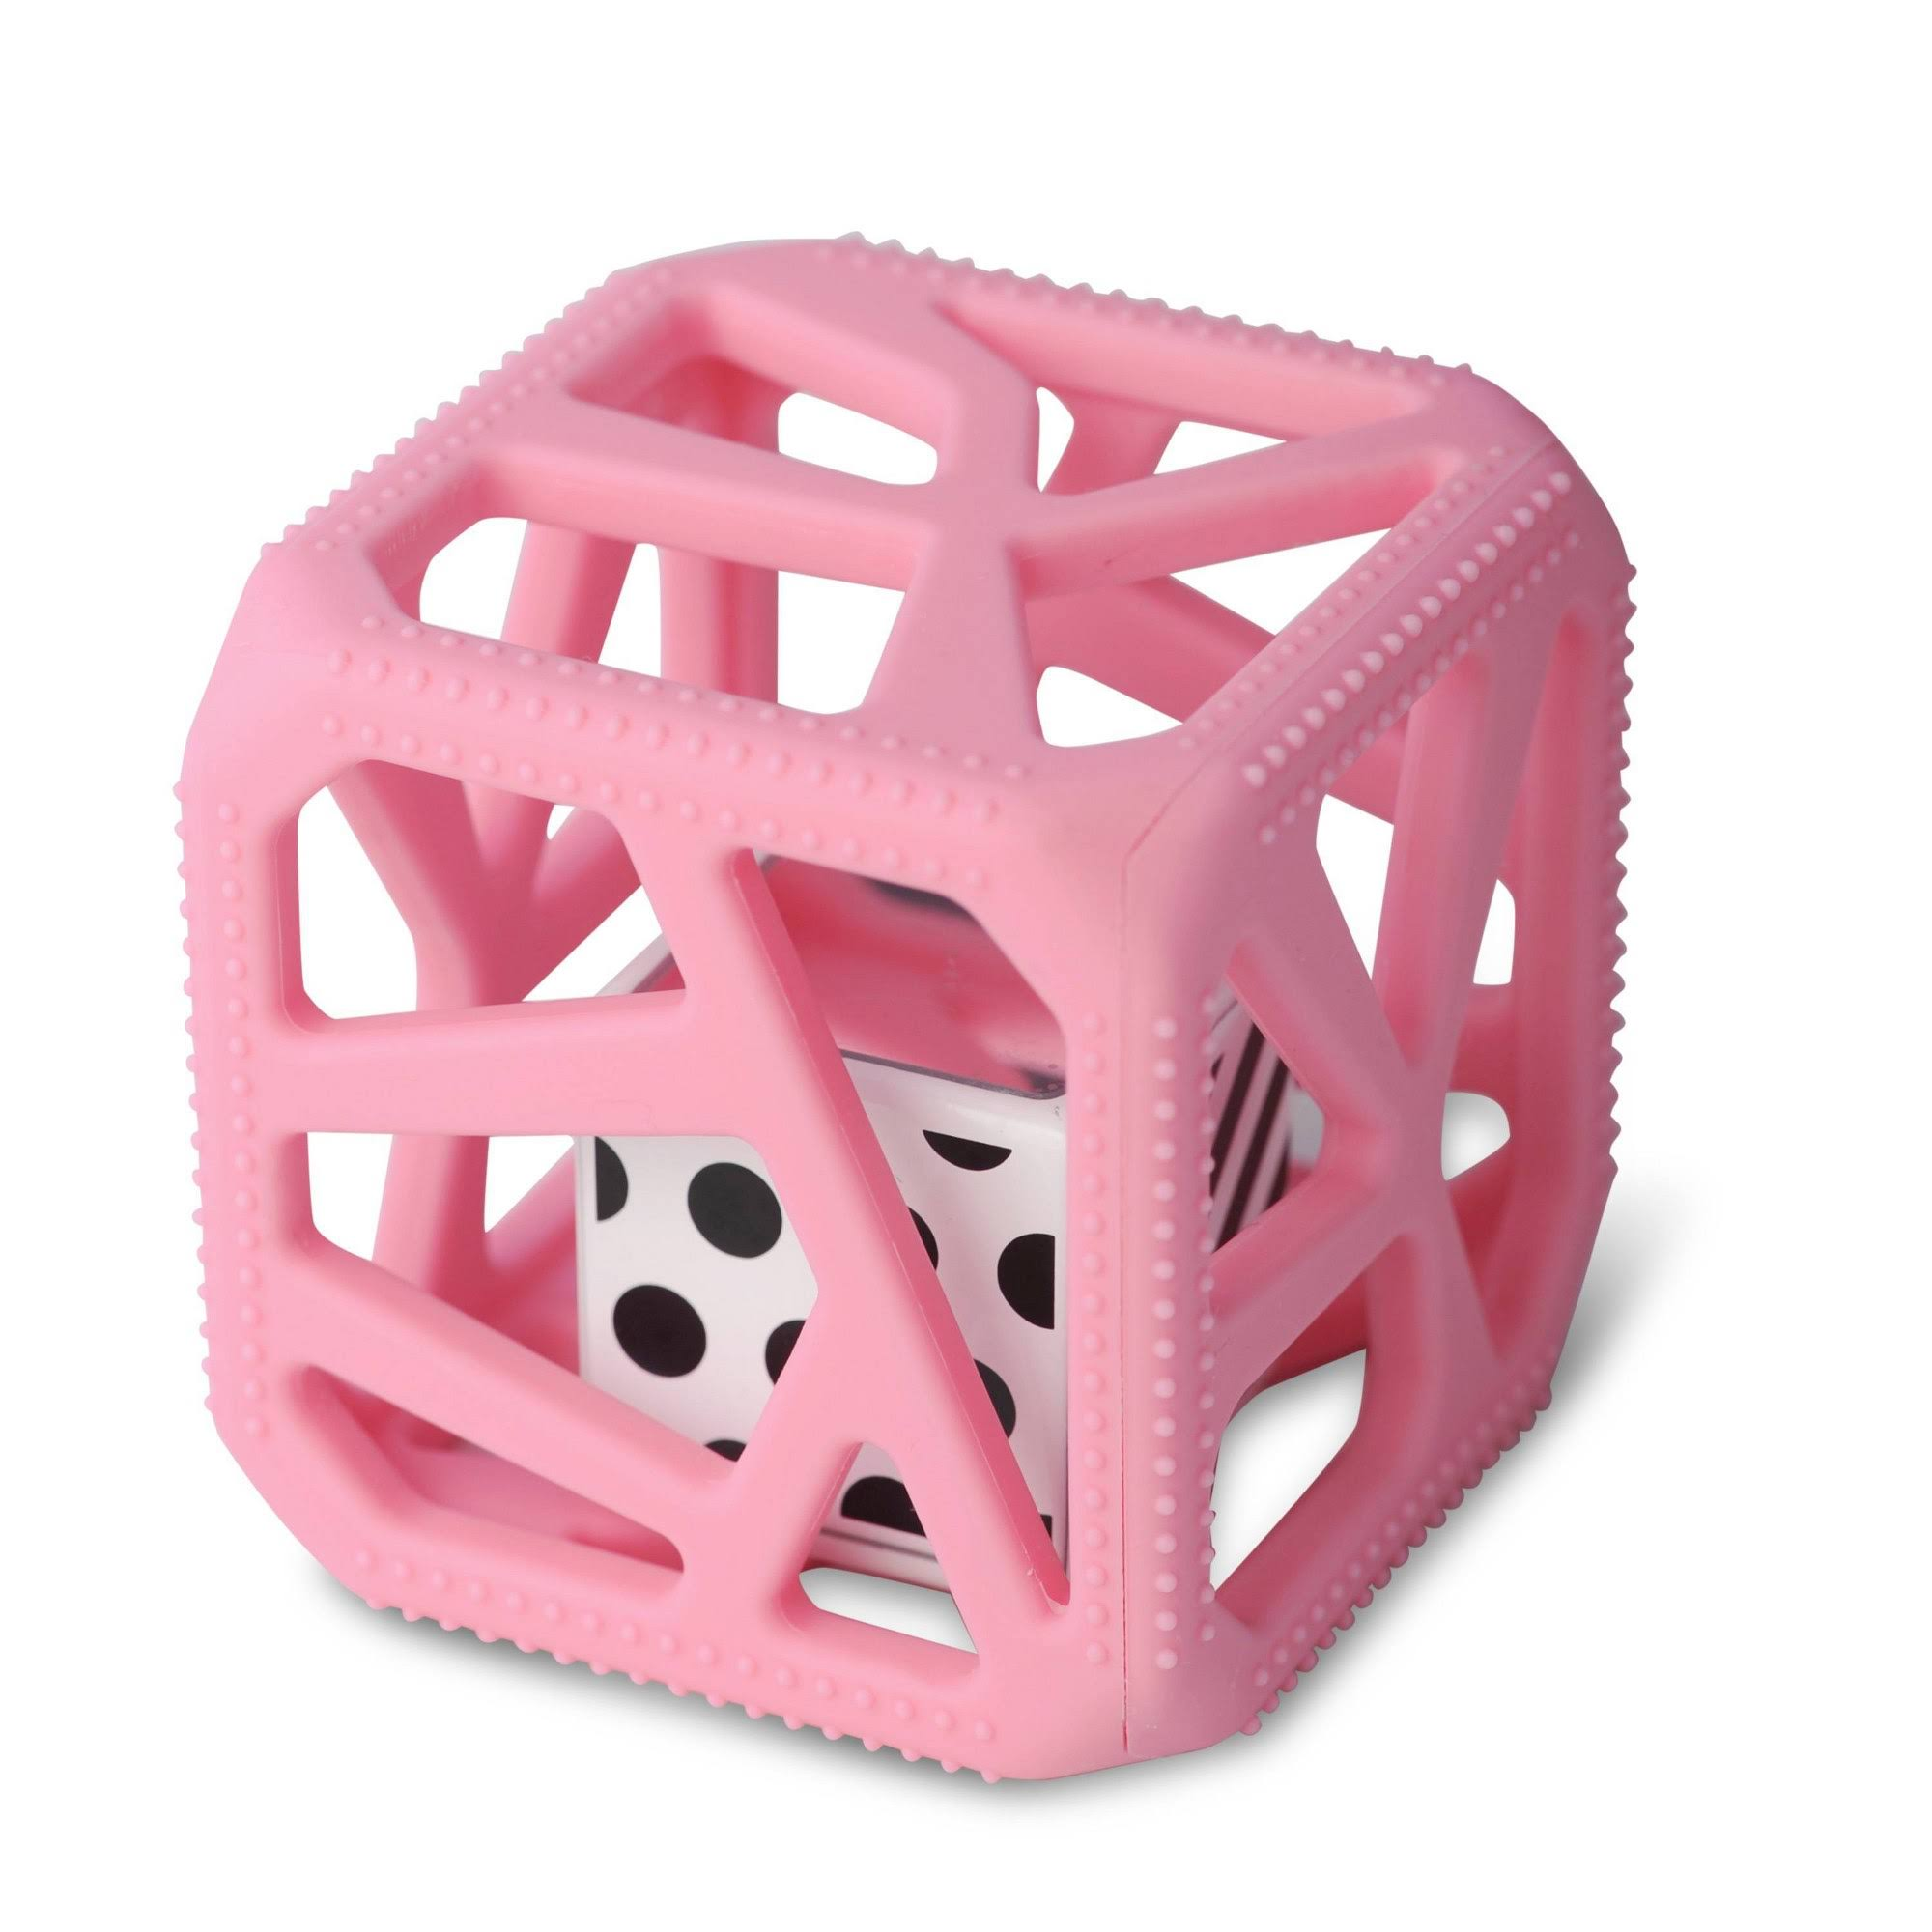 Malarkey Kids Chew Cube - Pink